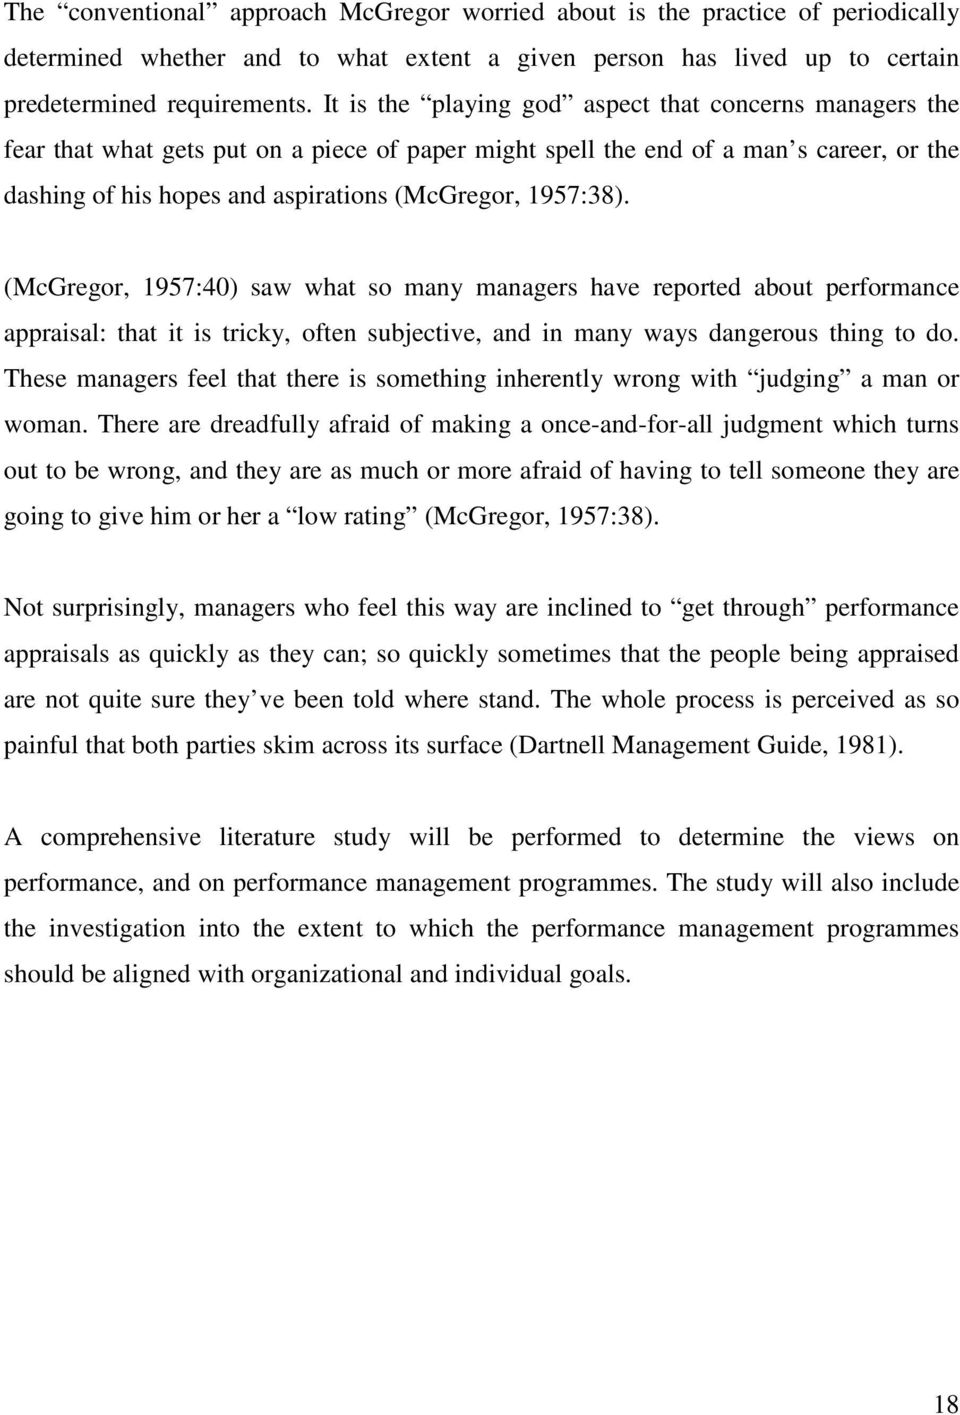 1957:38). (McGregor, 1957:40) saw what so many managers have reported about performance appraisal: that it is tricky, often subjective, and in many ways dangerous thing to do.